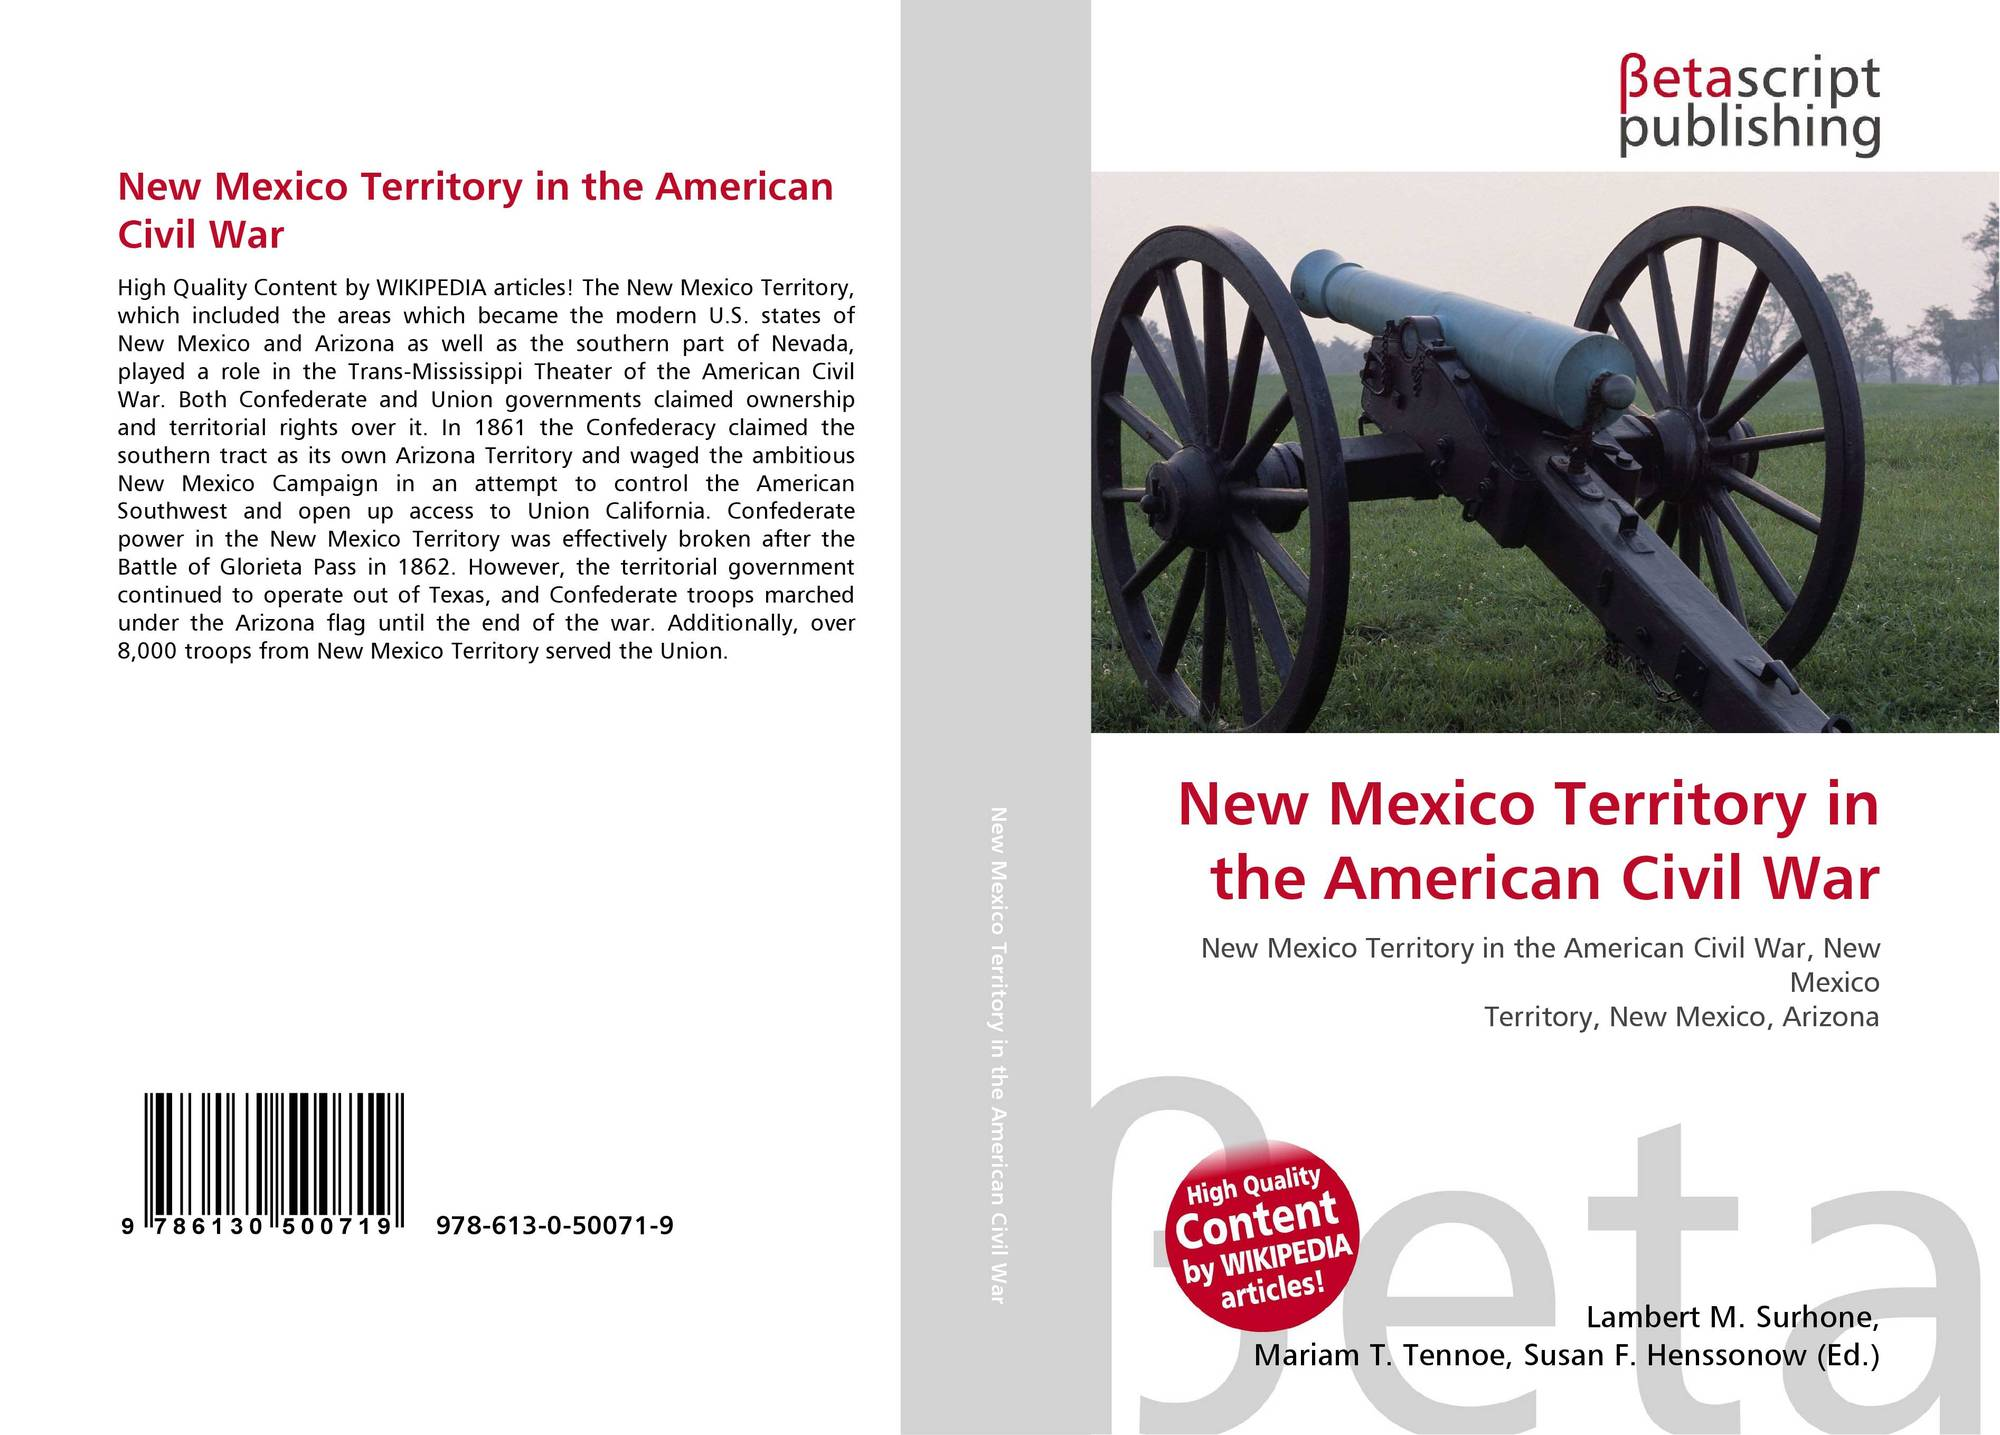 an analysis of developing north in the coming civil war Based on 1860 census figures, 8% of all white american males aged 13 to 43 died in the american civil war, including about 6% in the north and approximately 18% in the south the war remains the deadliest conflict in american history, resulting in the deaths of 620,000 military personnel.